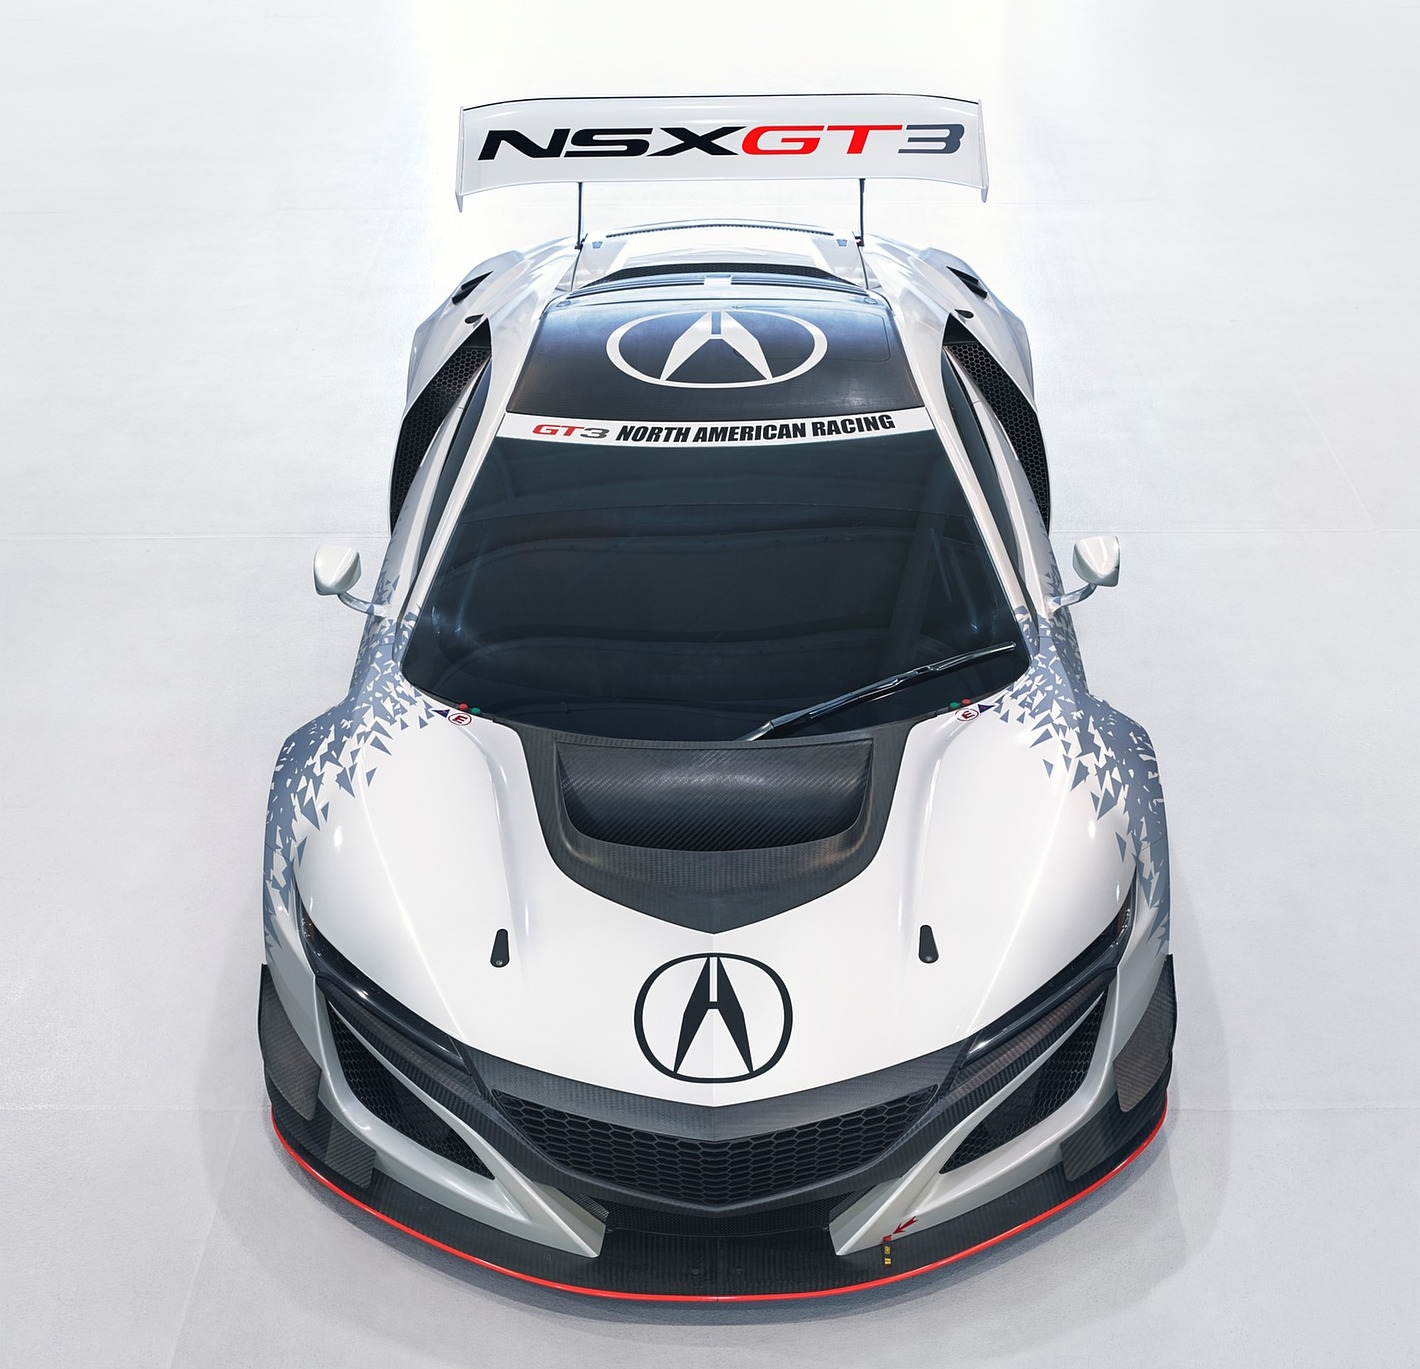 The Acura NSX GT3 Is Only For Racing Enthusiasts